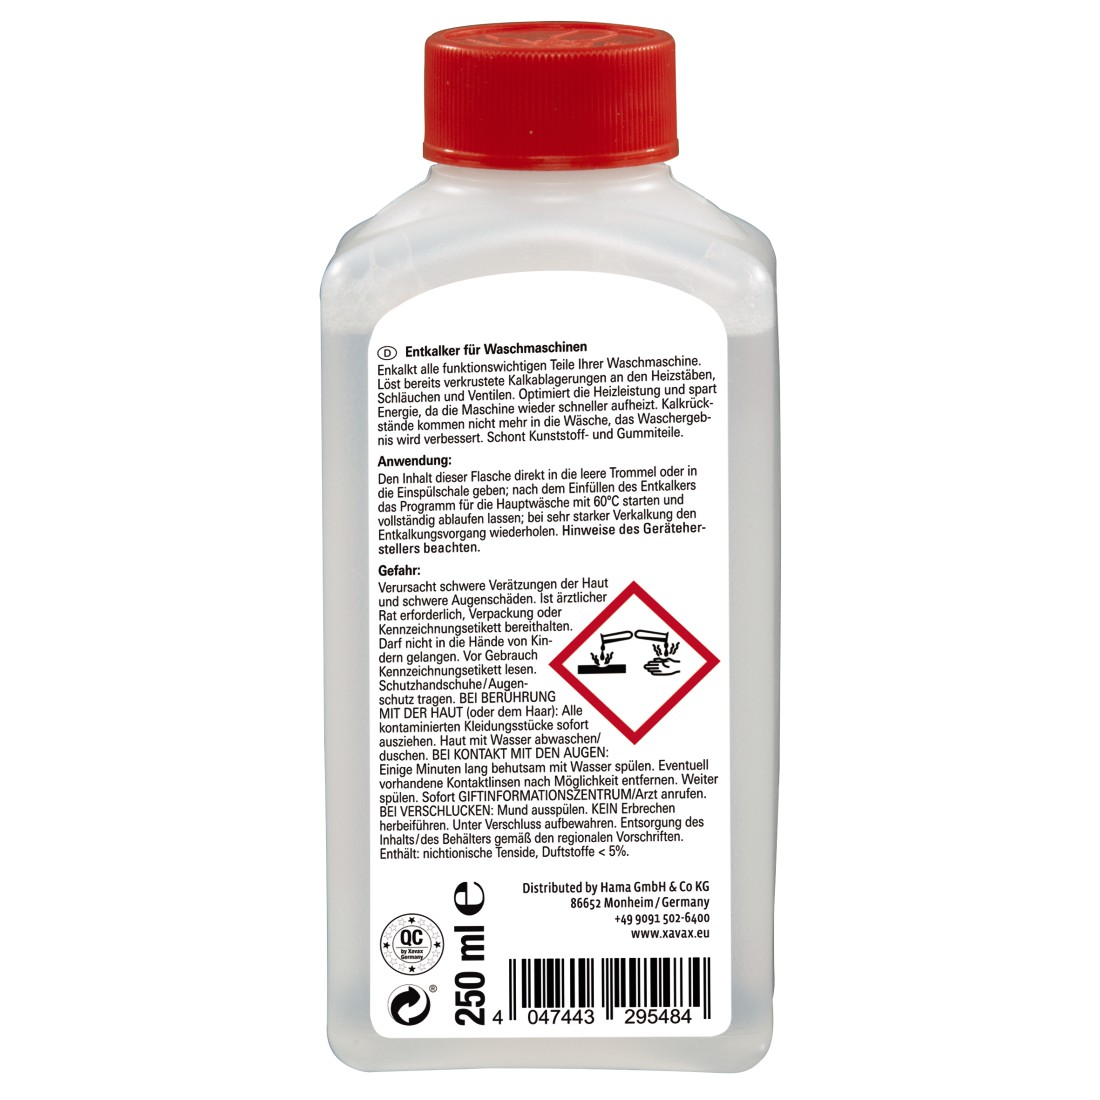 abx2 High-Res Image 2 - Xavax, Washing Maschine Discaler, 250 ml